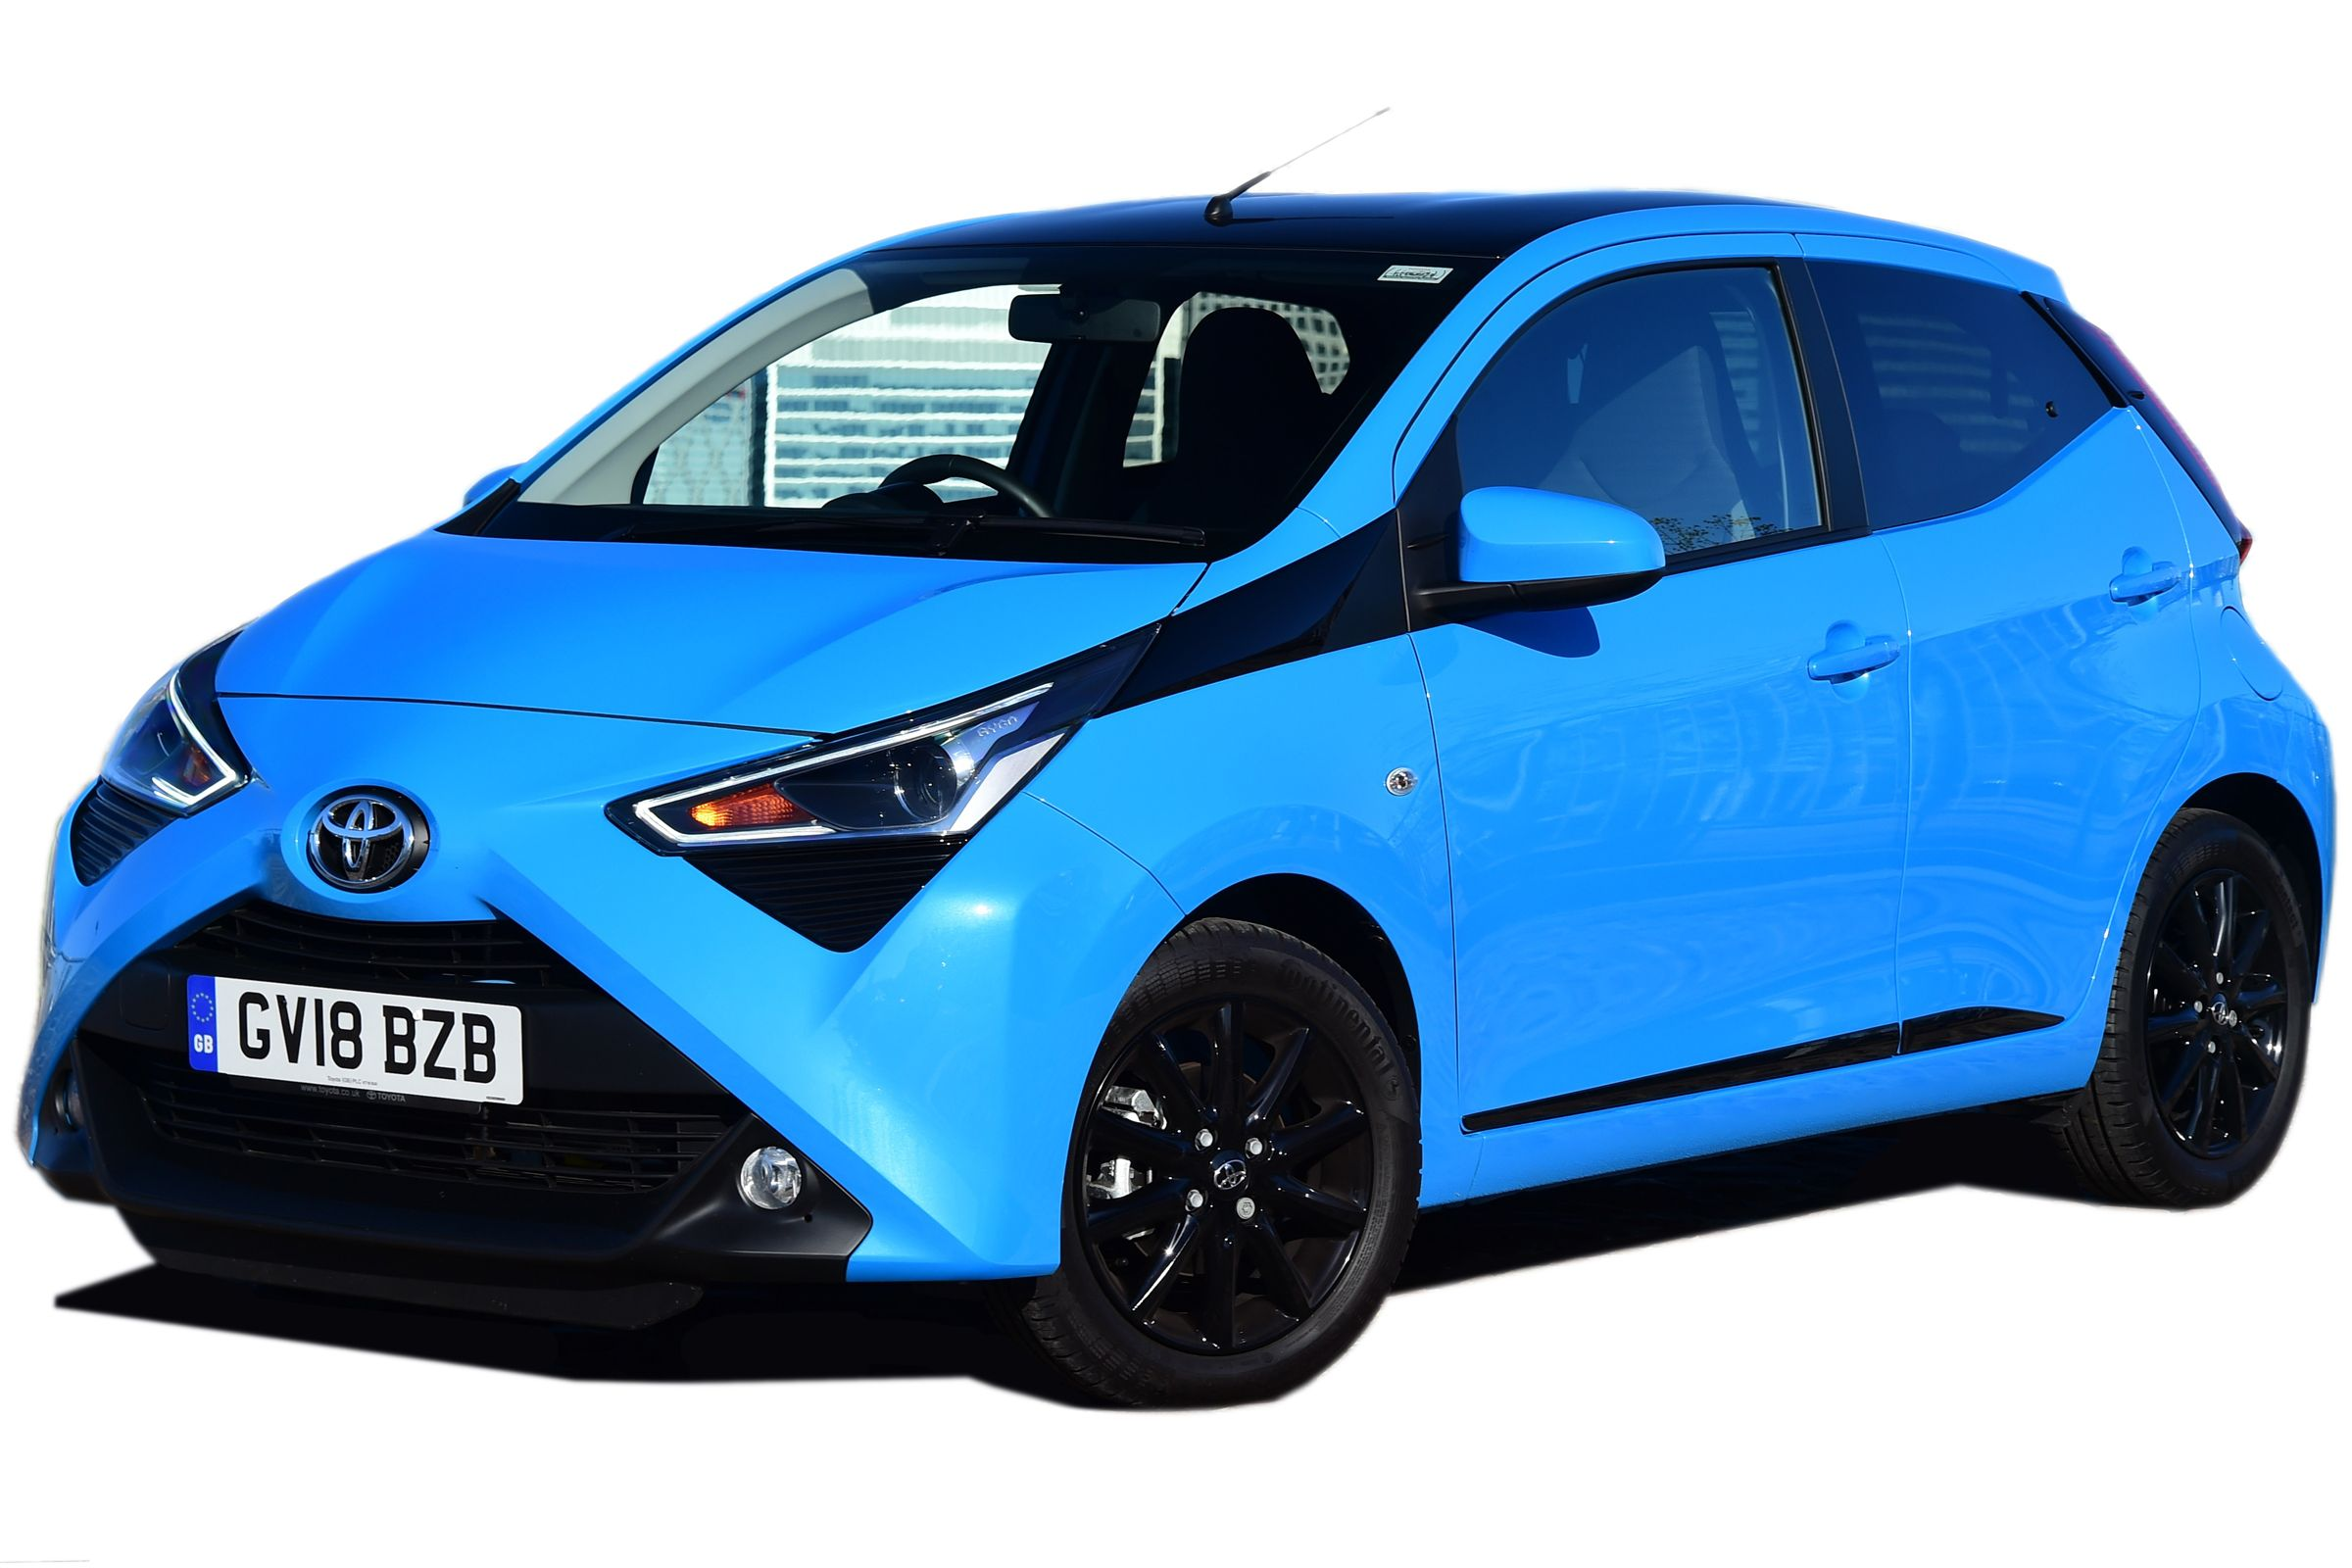 The Toyota Aygo Has A Bold Design Thrifty Engine And Comes In A